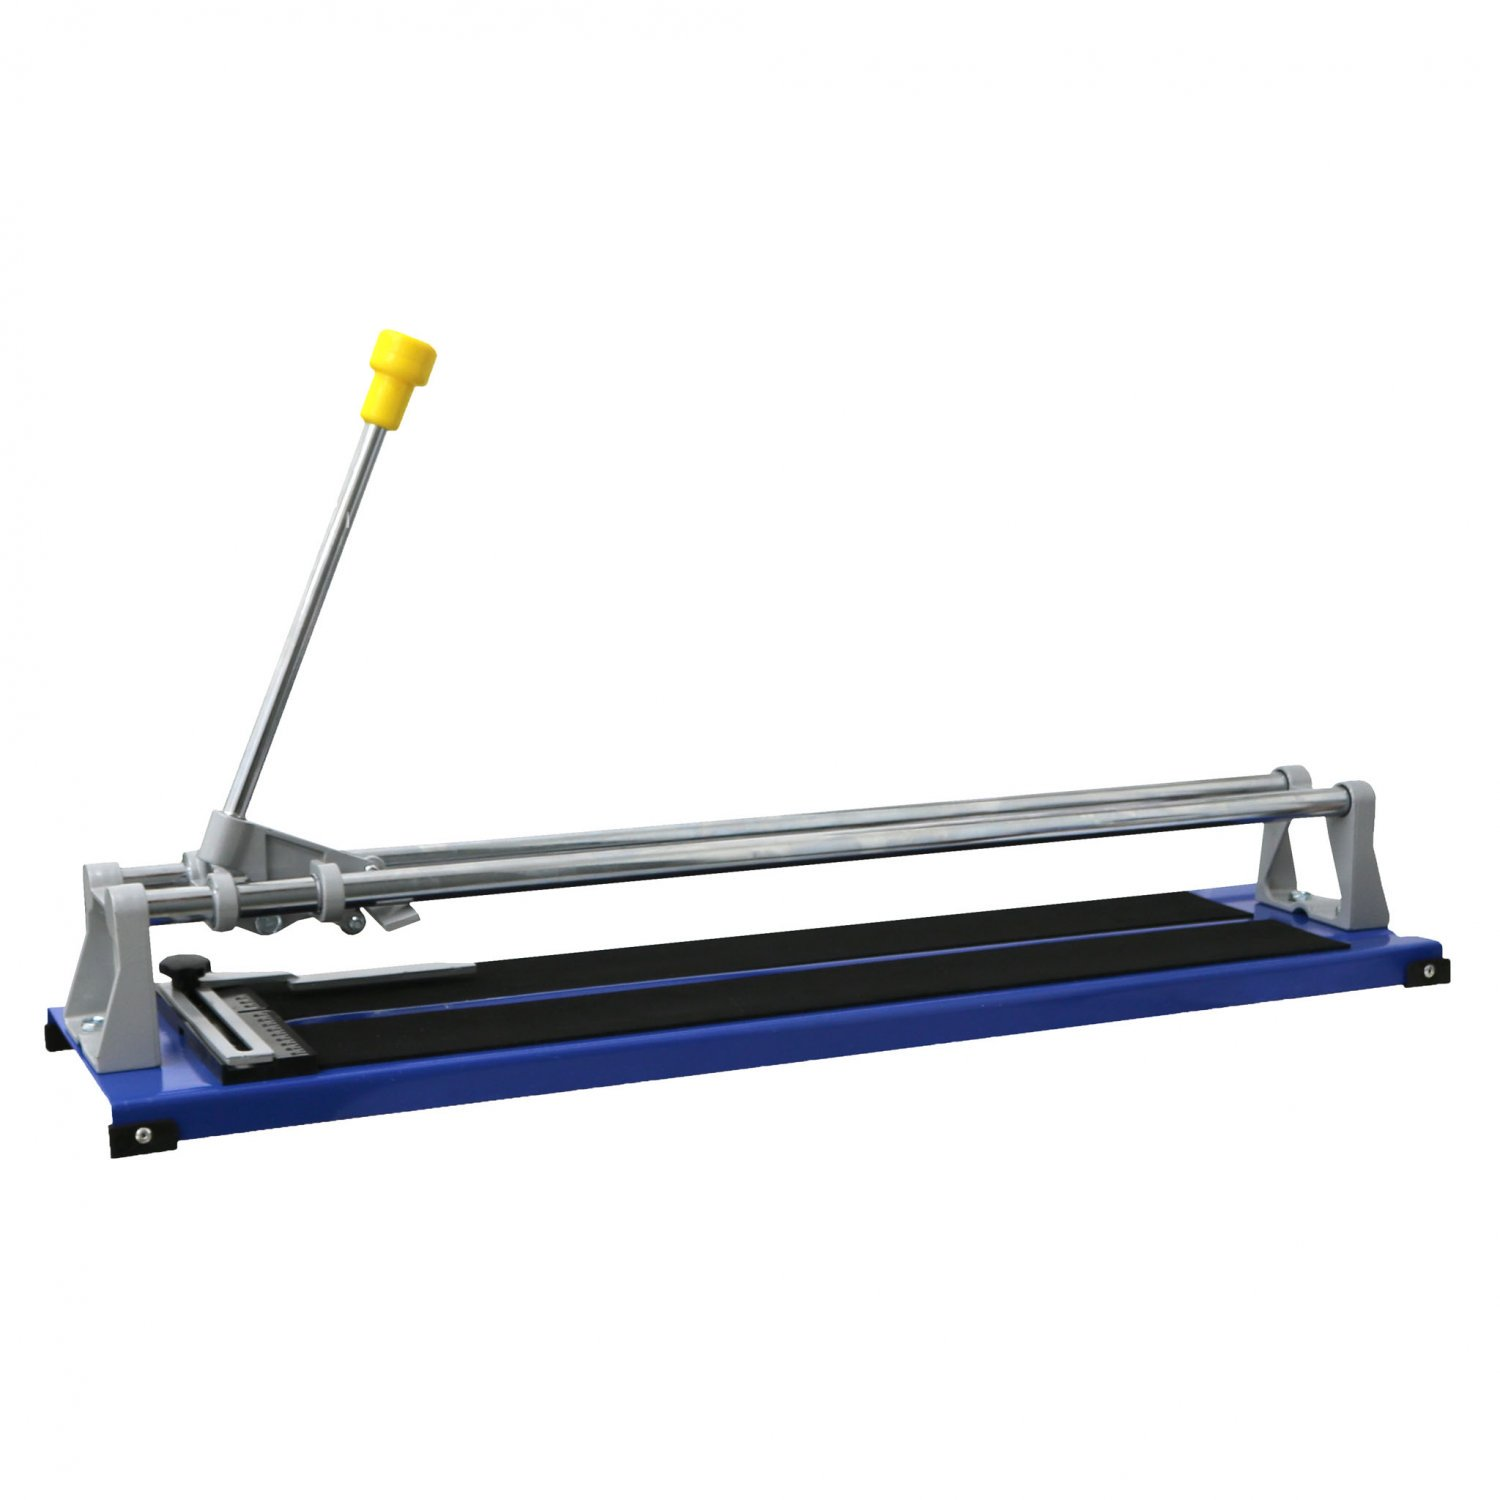 600mm Heavy Duty Ceramic Floor Manual Tile Cutter Tool Machine